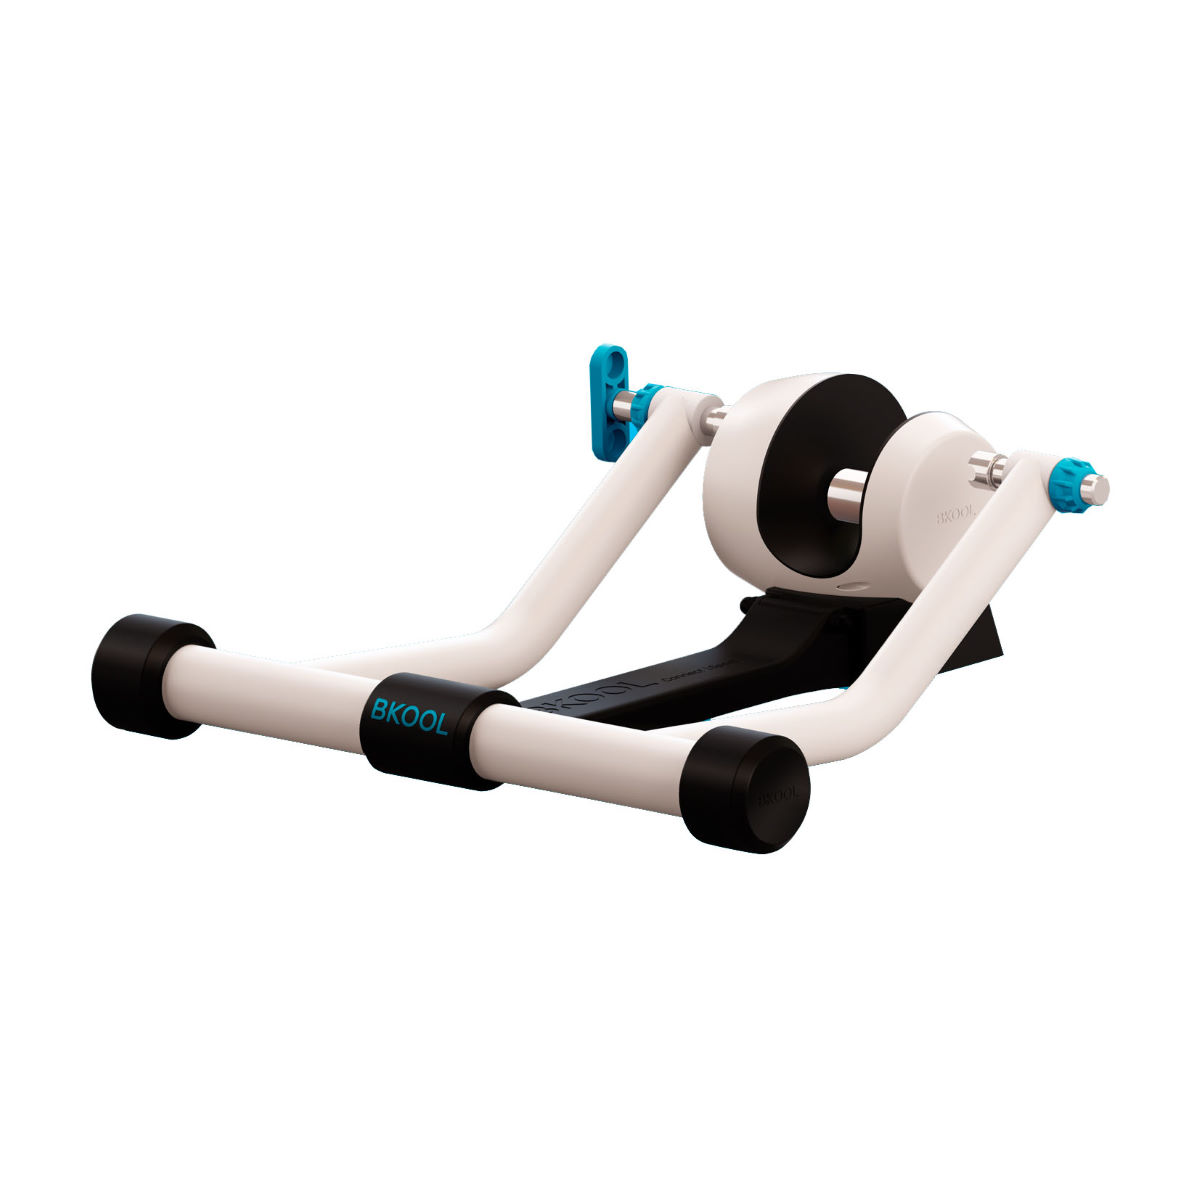 Home trainer Bkool Smart Go - One Size White/Black/Blue